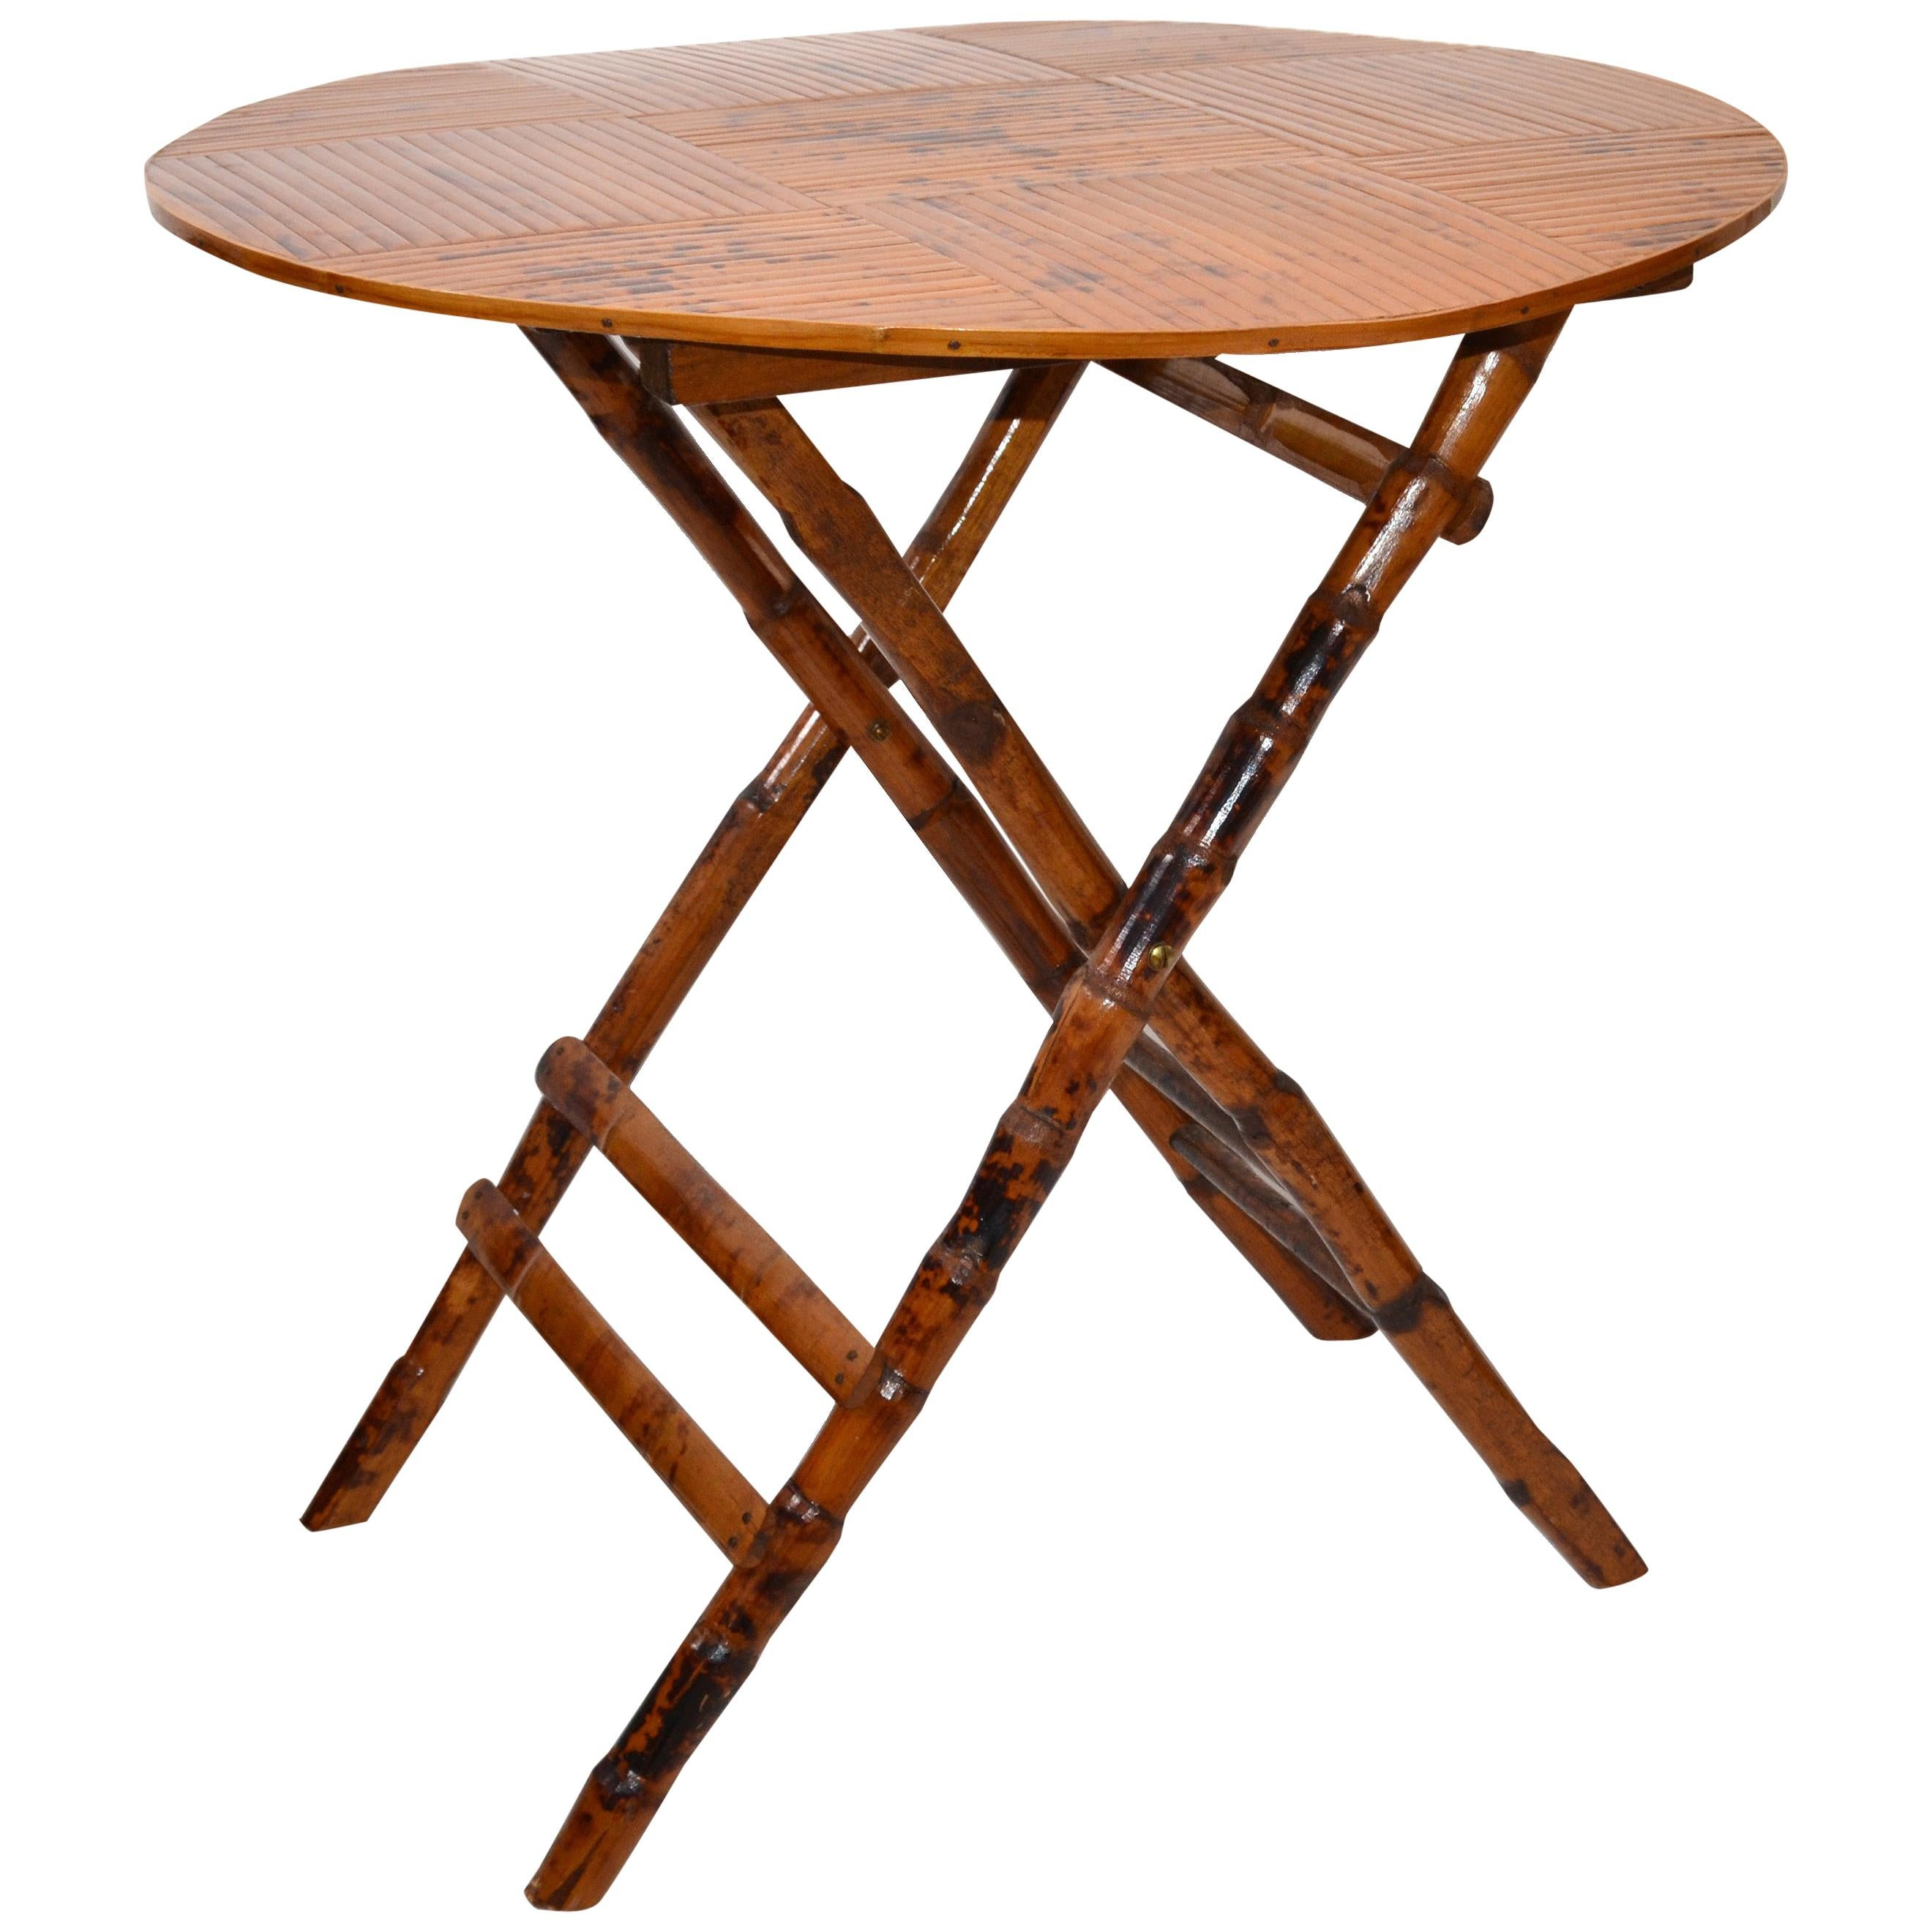 Vintage Handcrafted Round Bamboo Bistro Folding Table, Center Table X-Base